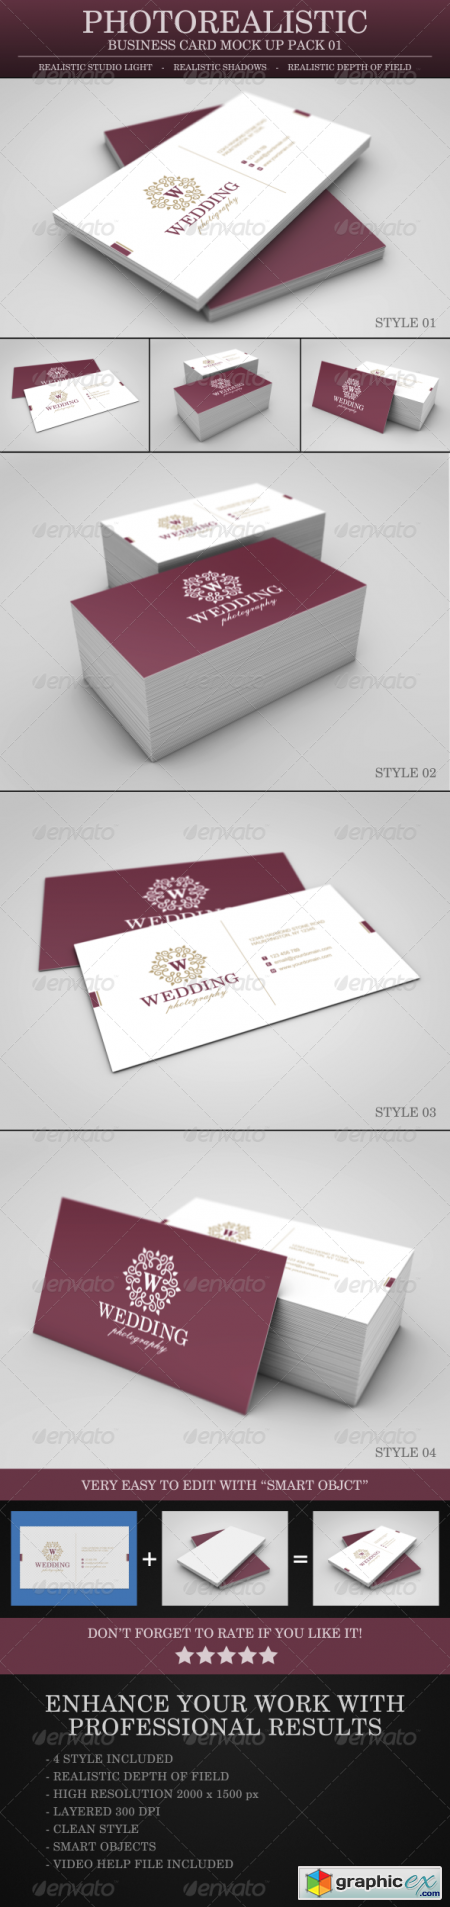 Photo Realistic Business Card Mock Up Pack - 01 3742572